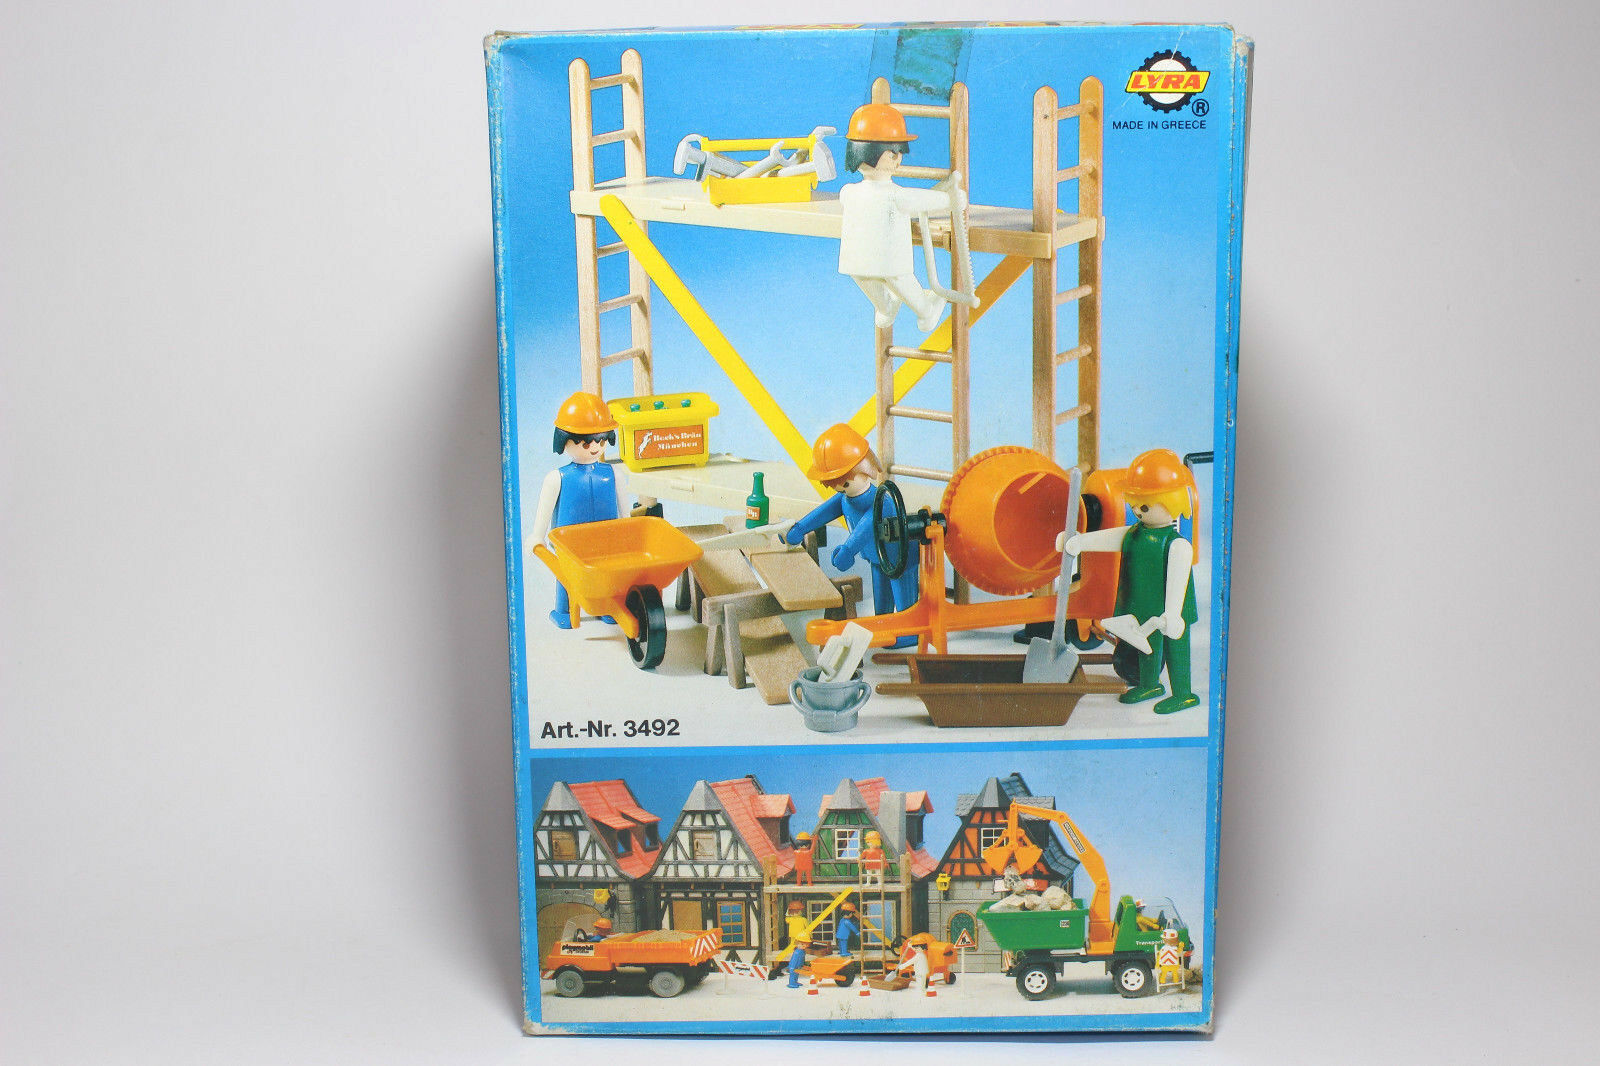 VERY RARE Bulldozer Bulldozer Bulldozer Playmobil Nr 3507 LYRA GREECE 1980 EARTHWORKERS SEALED BAG 7ae889